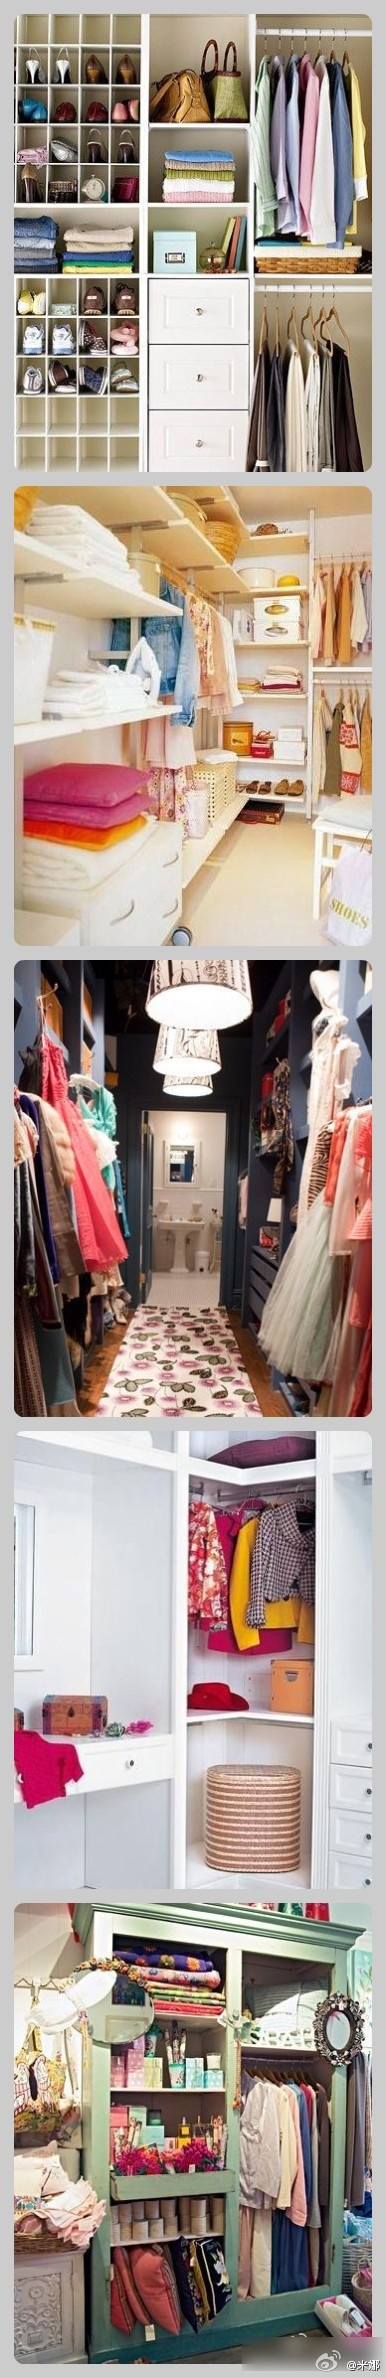 17 best images about closet ideas on pinterest closet for His and hers walk in closet